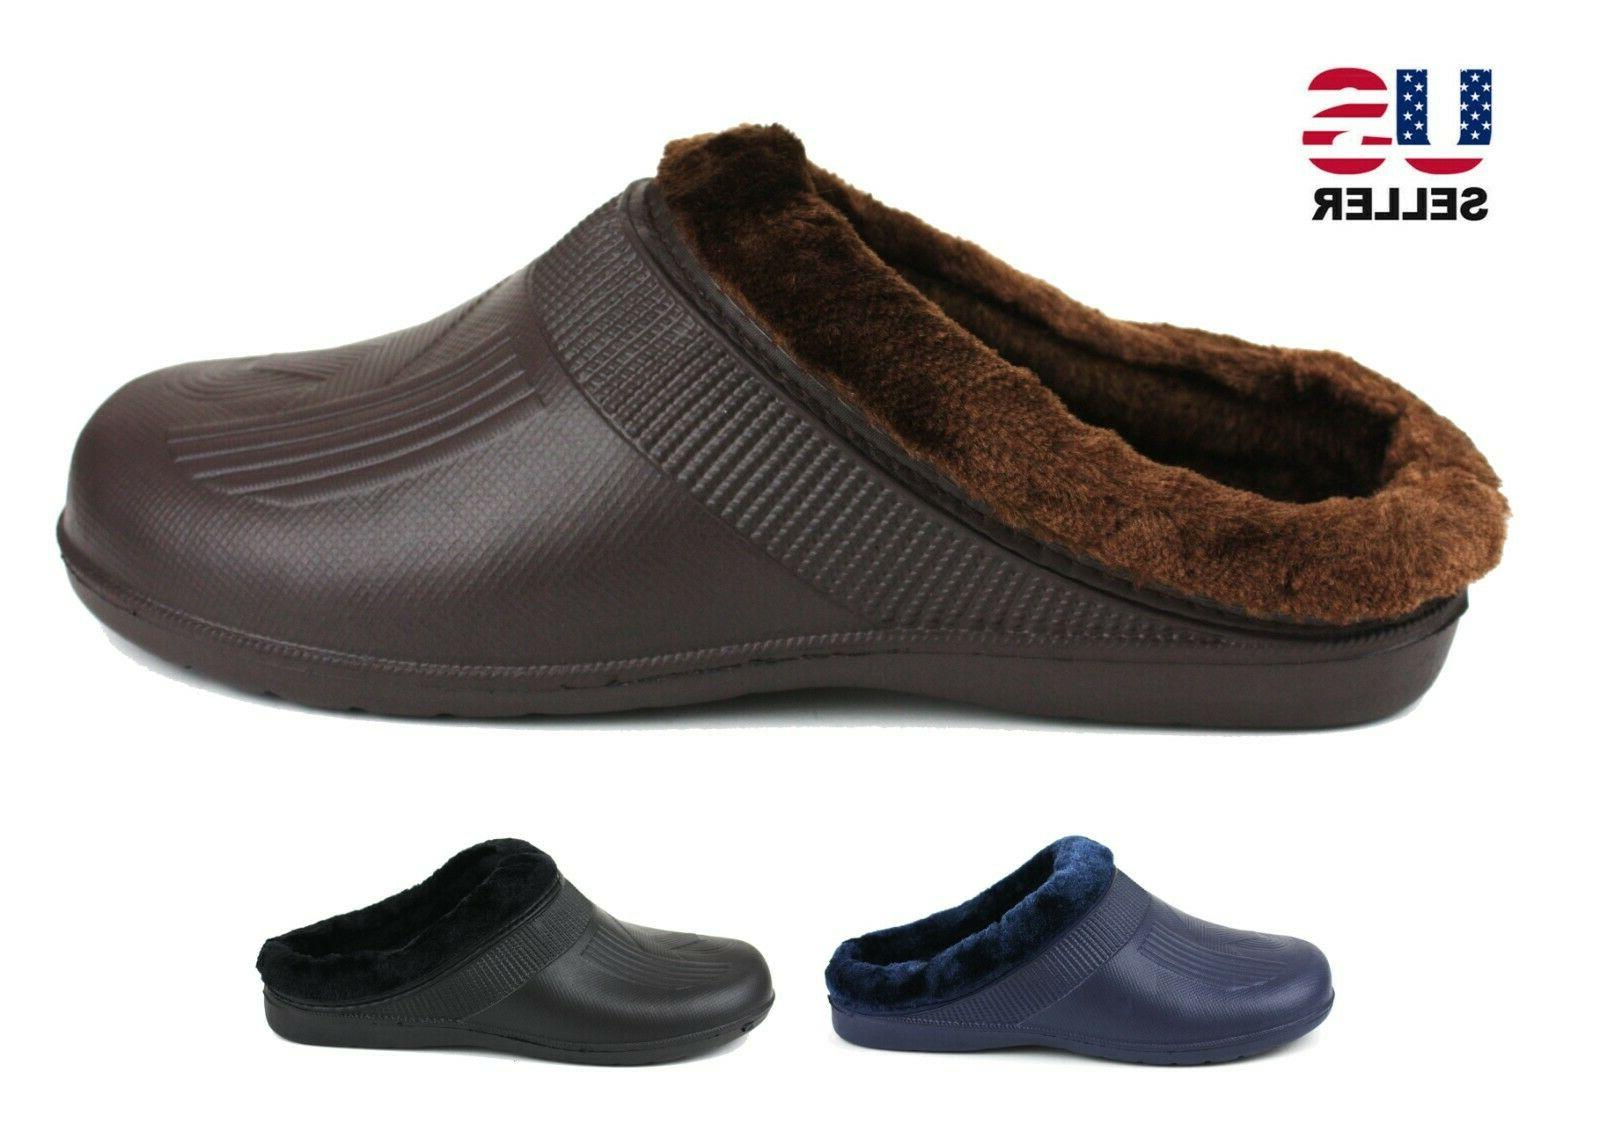 mens slippers shoes clogs fleece lined warm